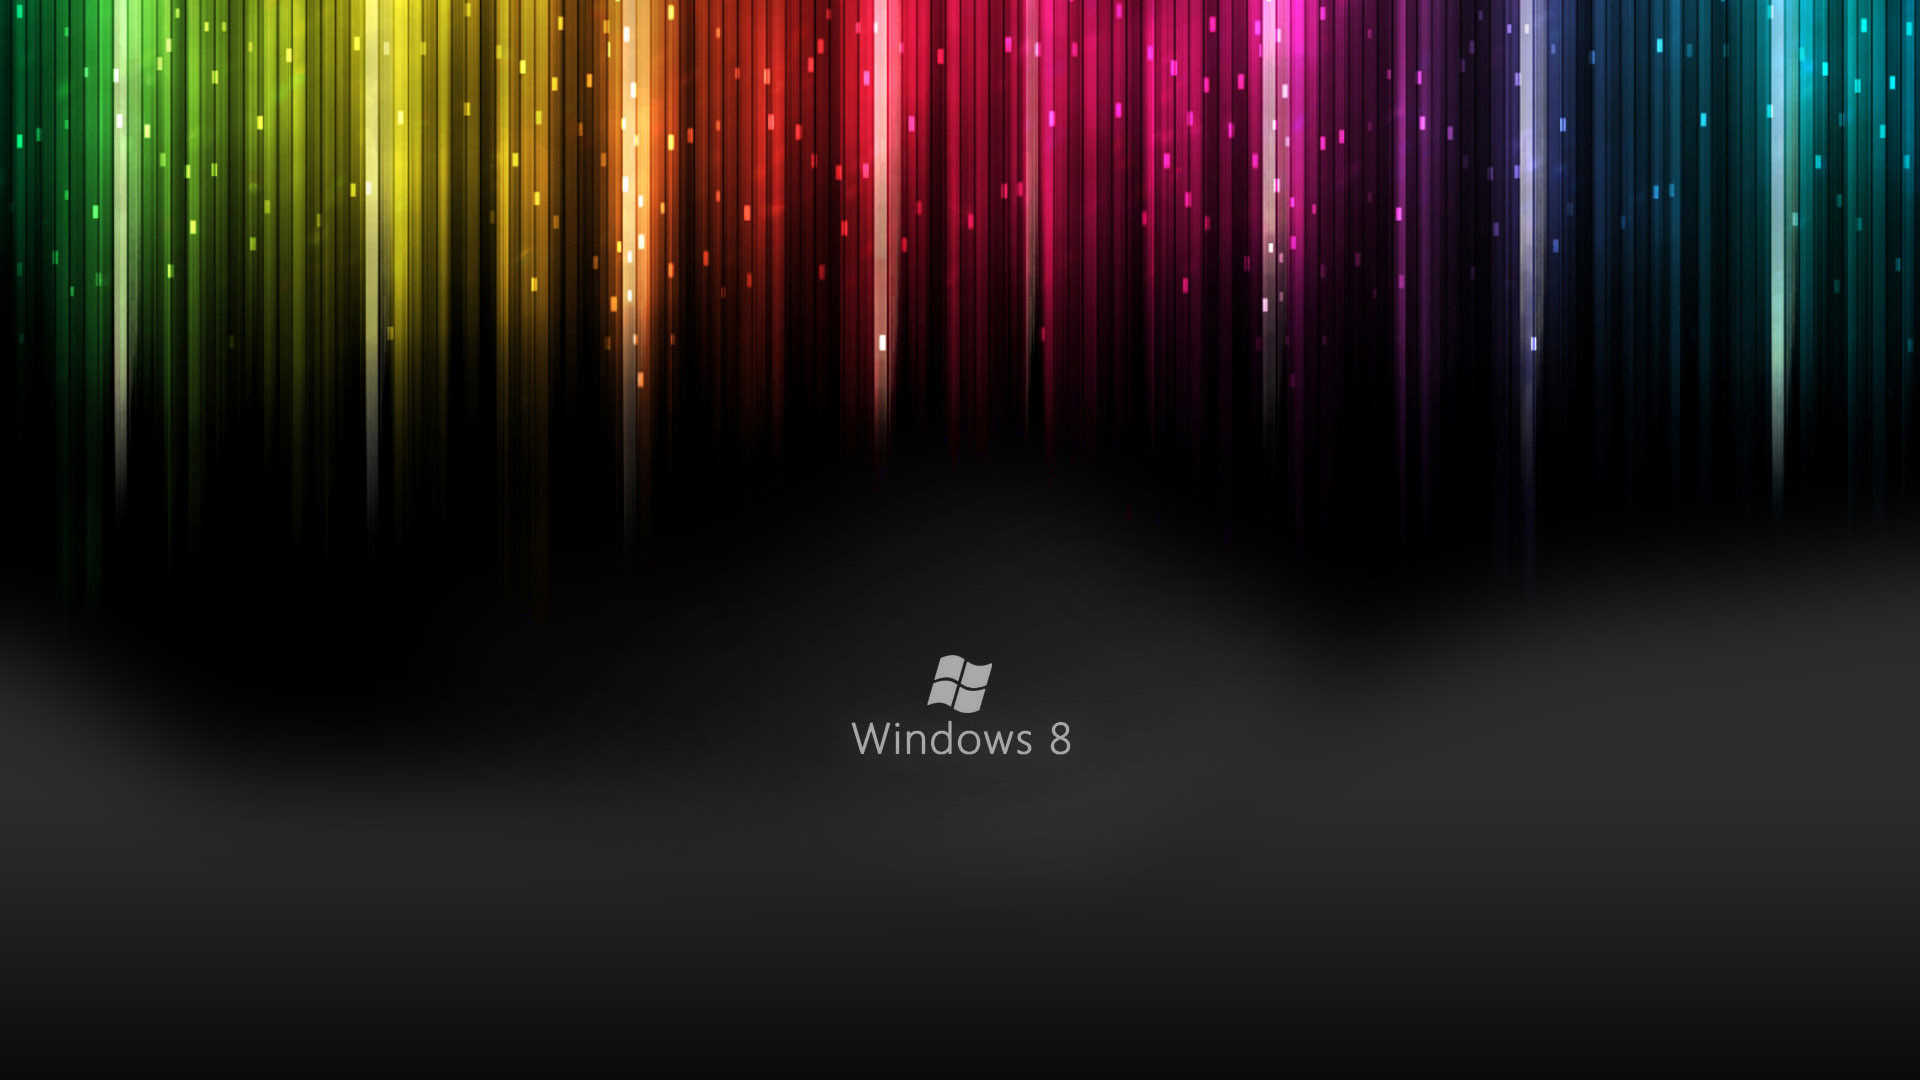 Windows 8 Live Wallpapers HD Wallpapers